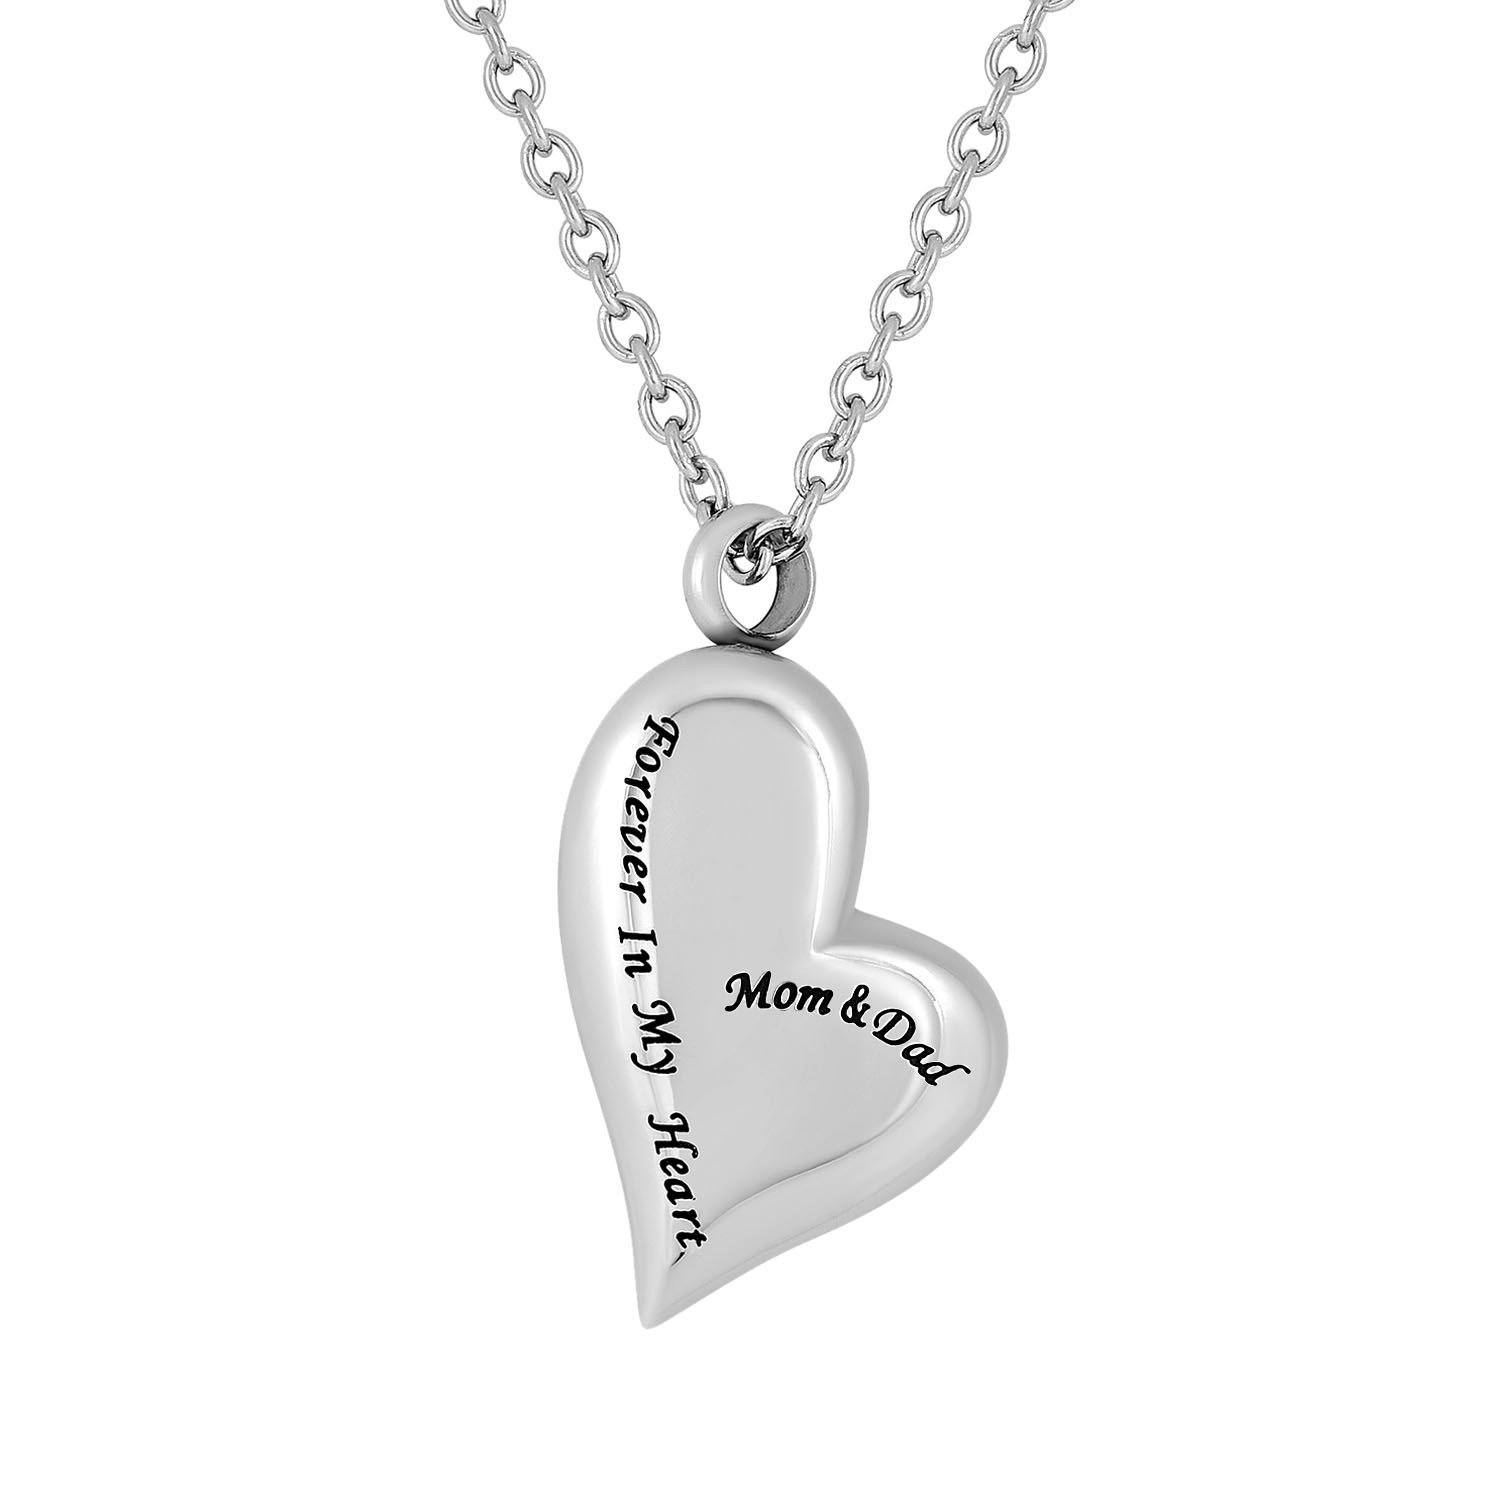 Mom and dad forever in my heart cremation necklace jewelry for ashes cremation jewelry necklace for ashes mom and dad forever in my heart aloadofball